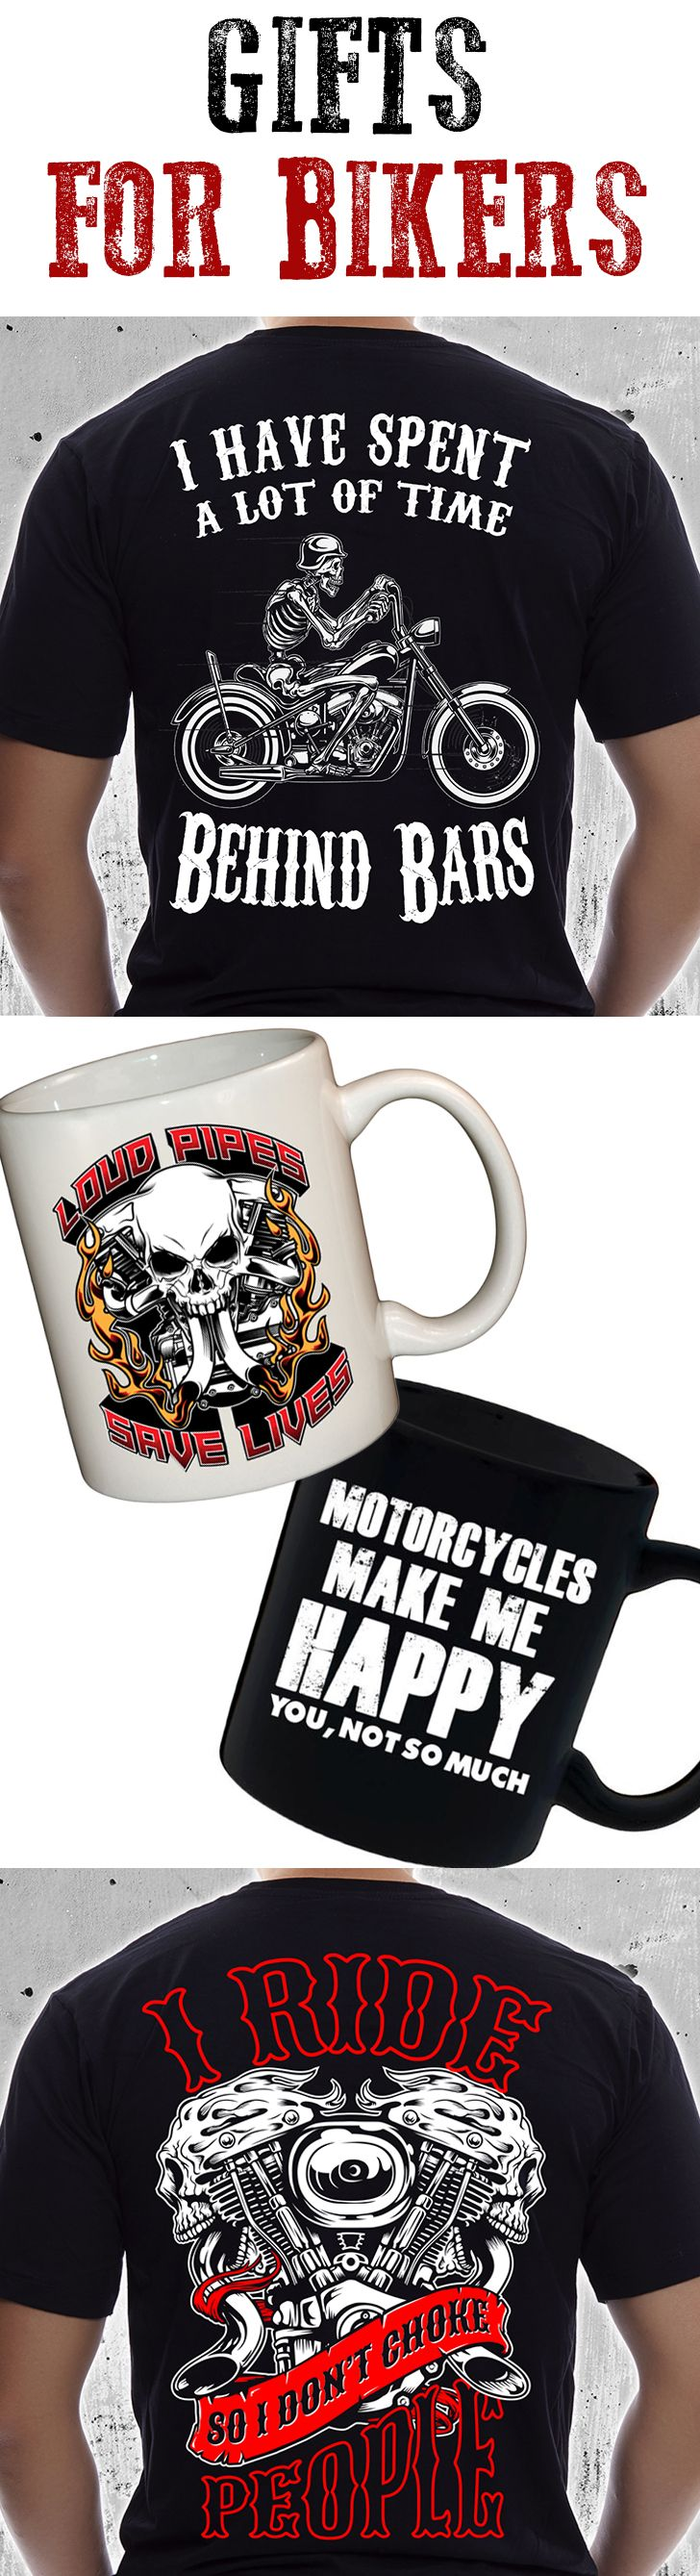 Awesome site for finding gifts for bikers and motorcyclists. Funny biker t-shirts, mugs, and more! Check out SkullSociety.com